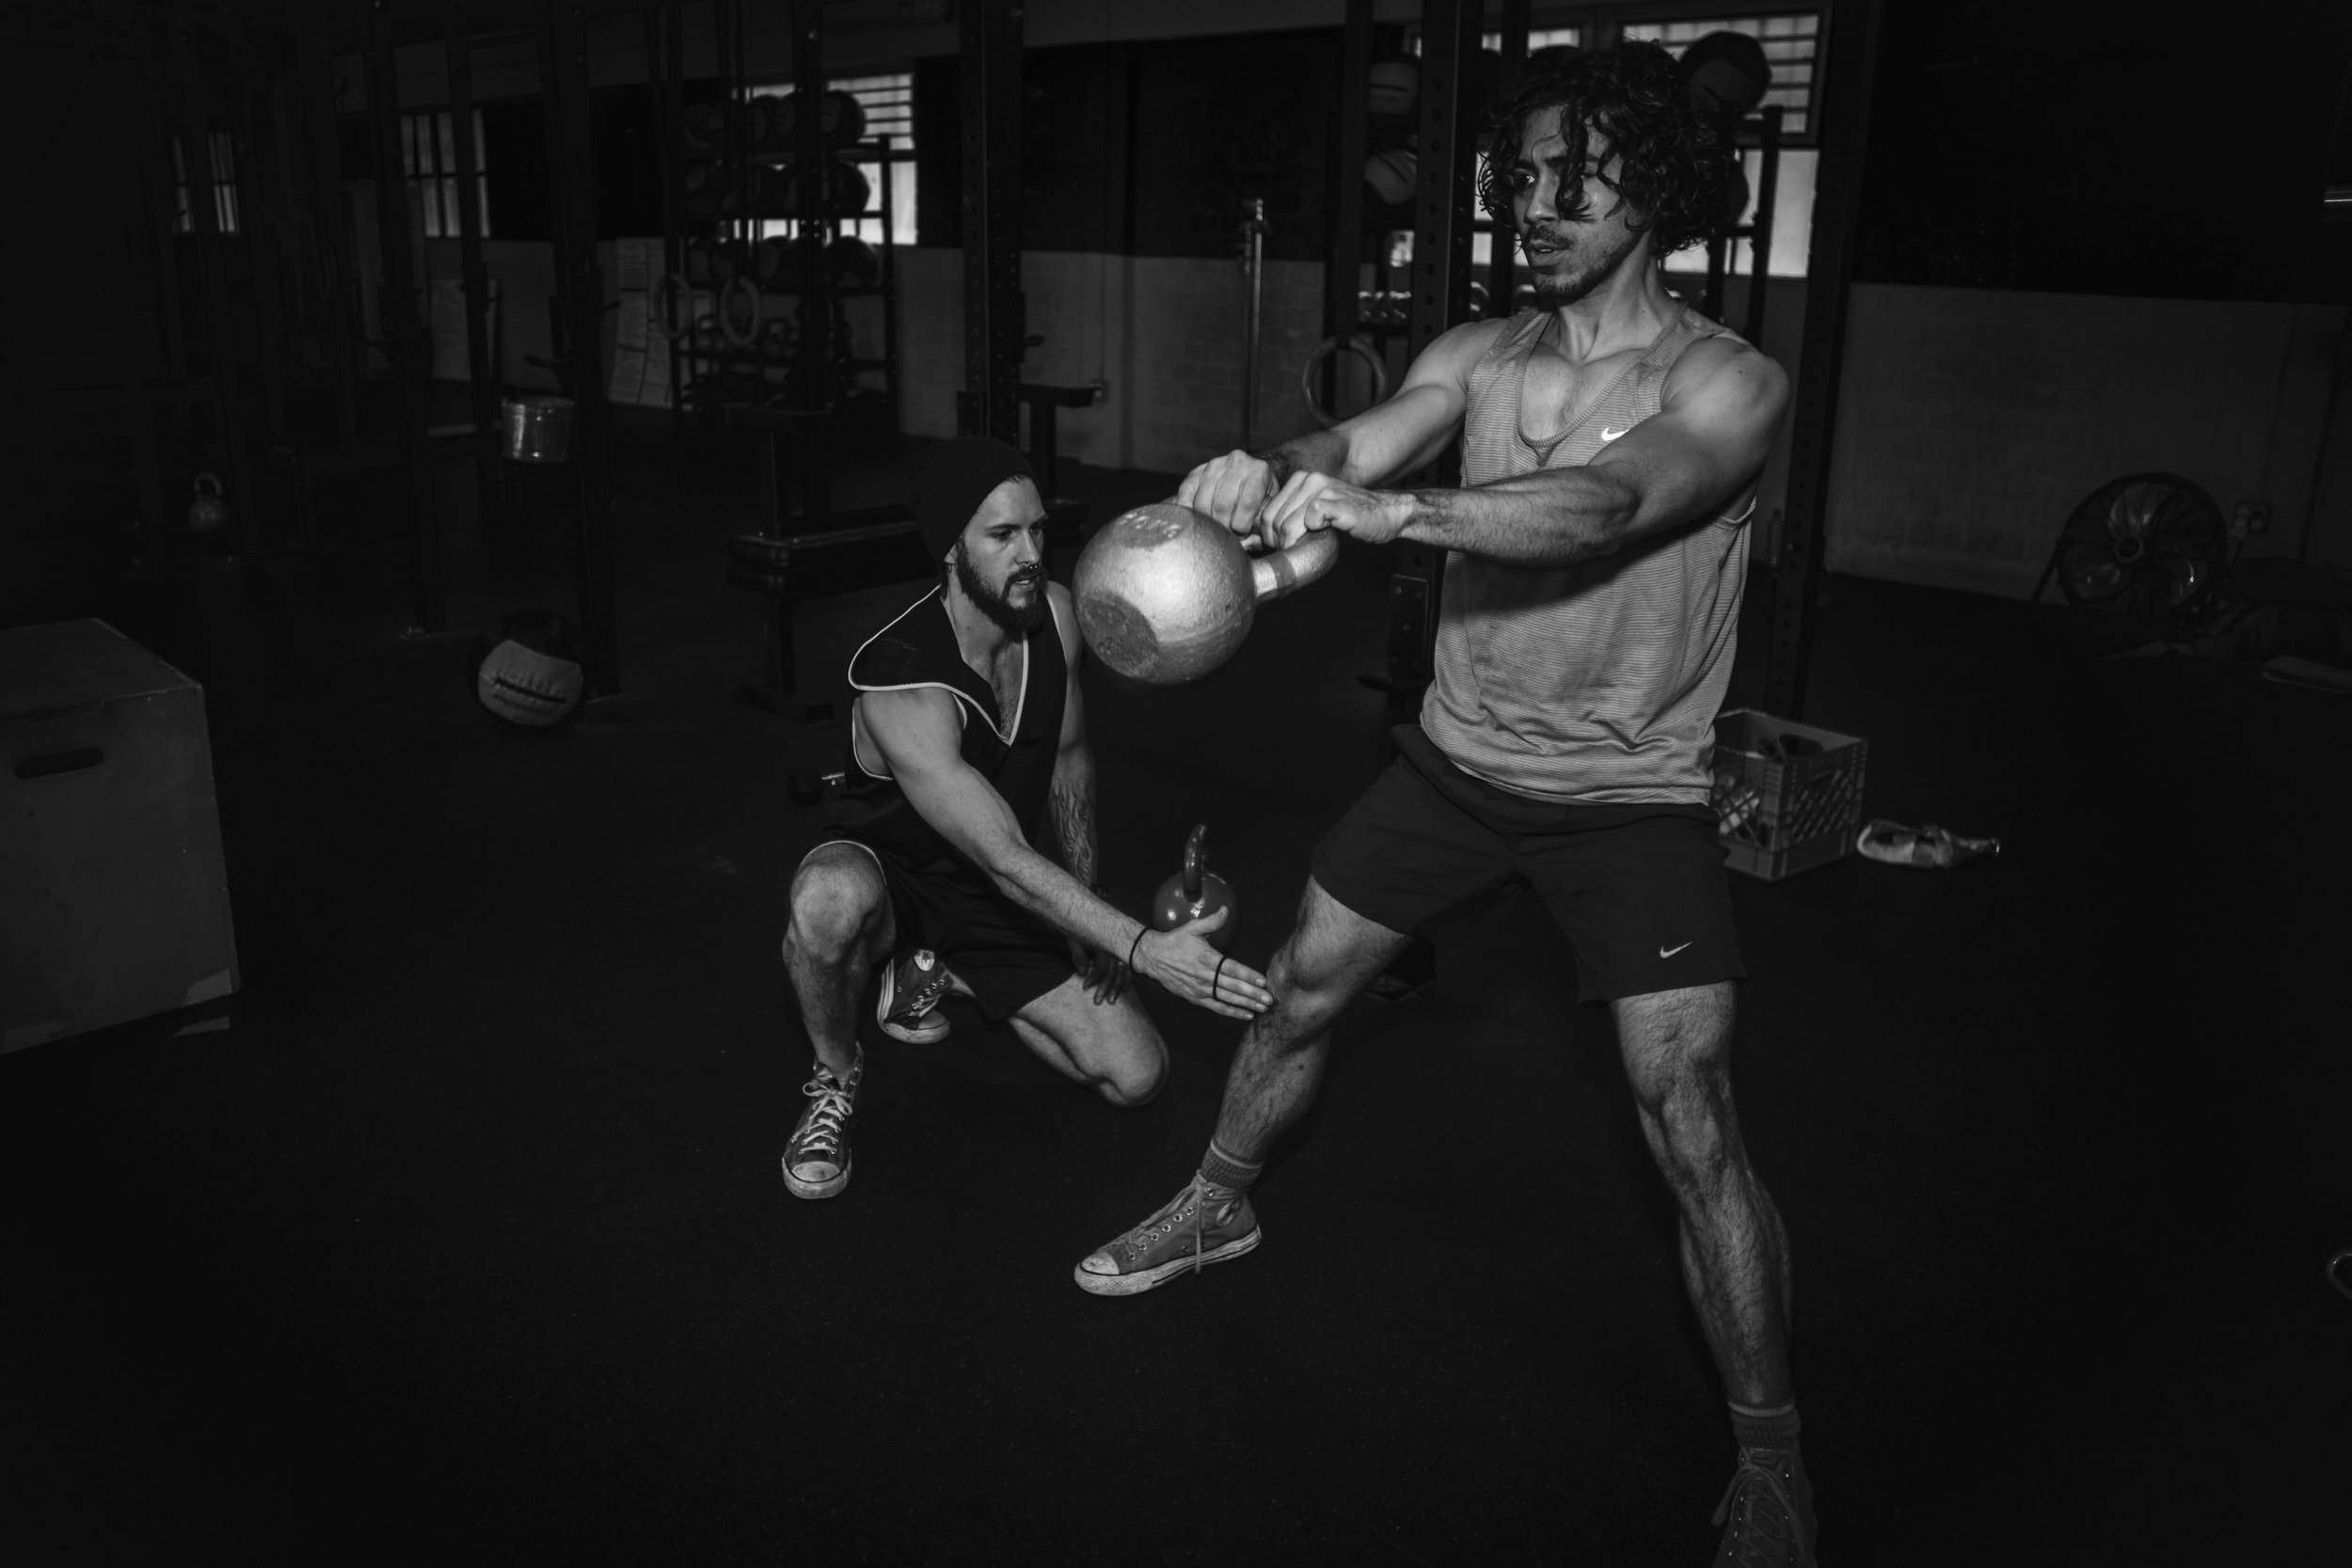 Personal Training - 1-on-1 training designed specifically for your body's needs.